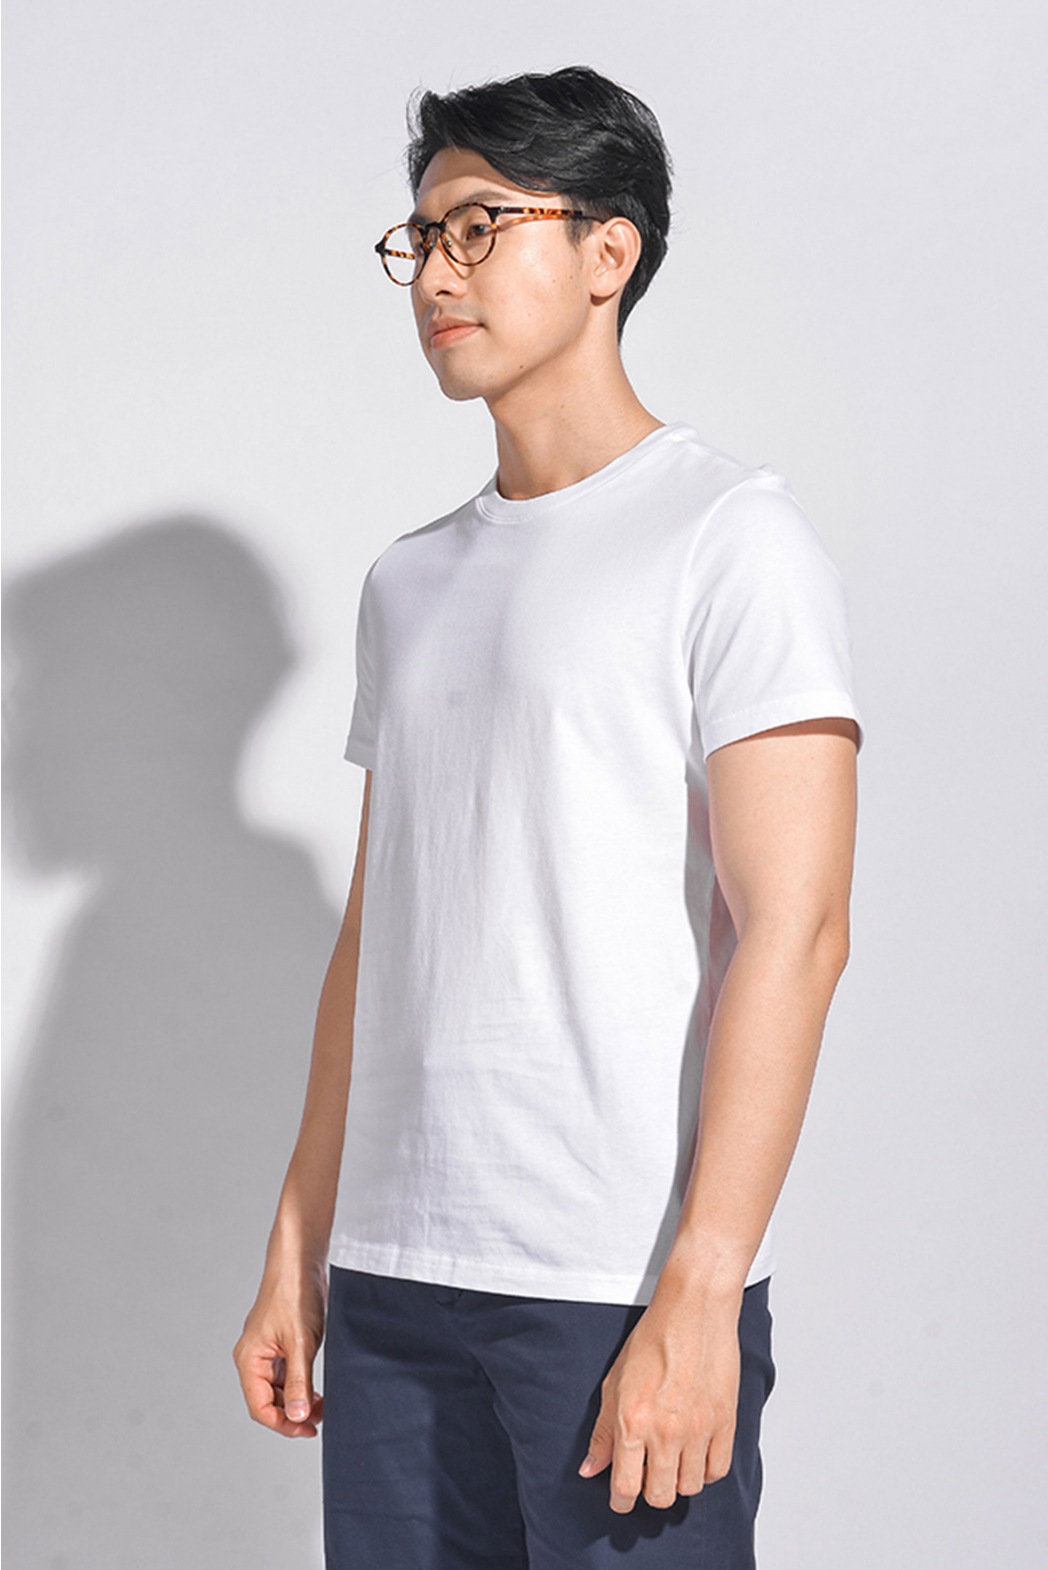 Áo thun tay ngắn, solid. Cotton. FITTED form - 10S20TSH037